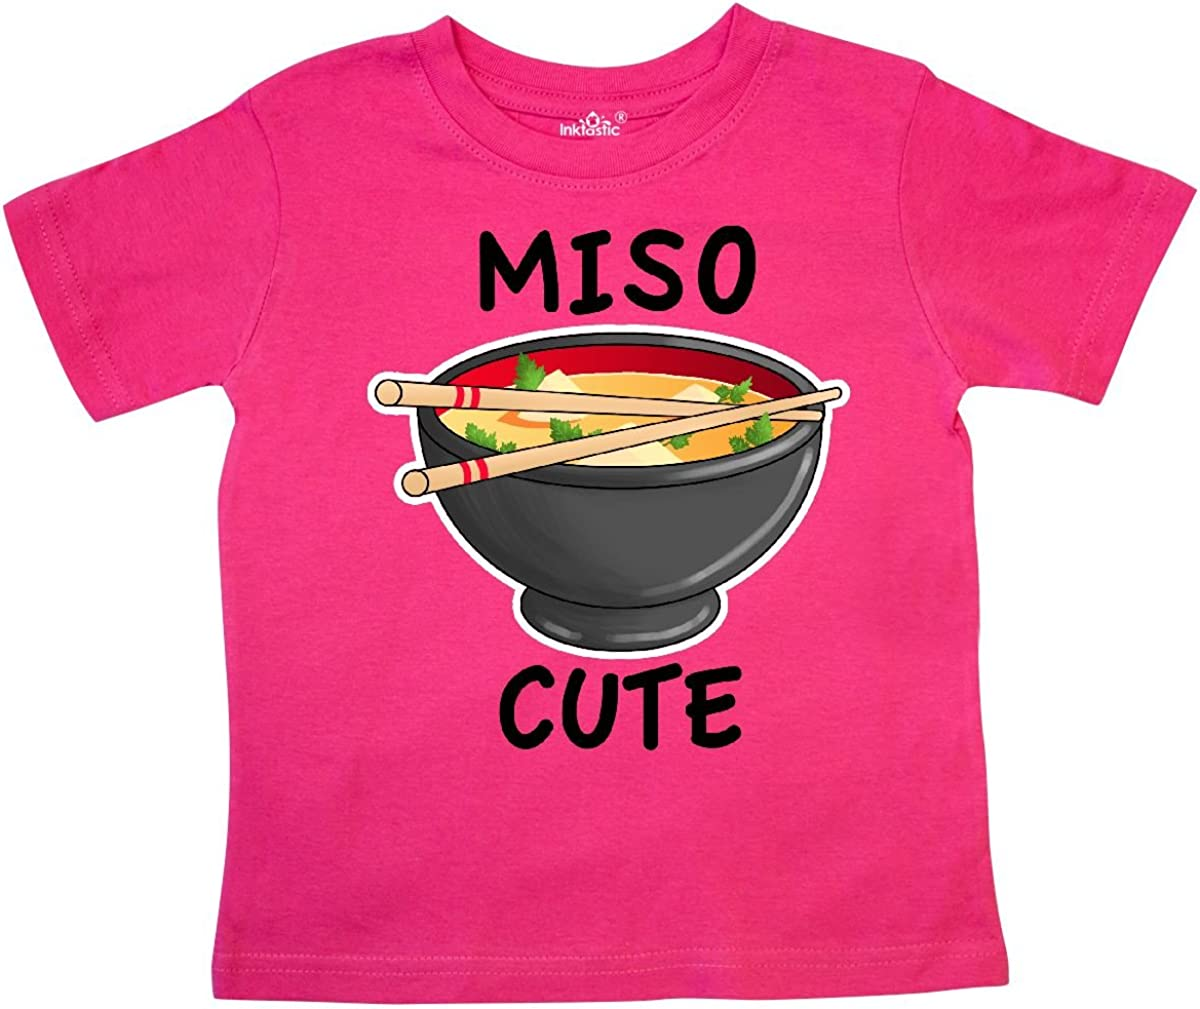 inktastic Miso Cute with Miso Soup Toddler T-Shirt 712Bl2x-Oc9L